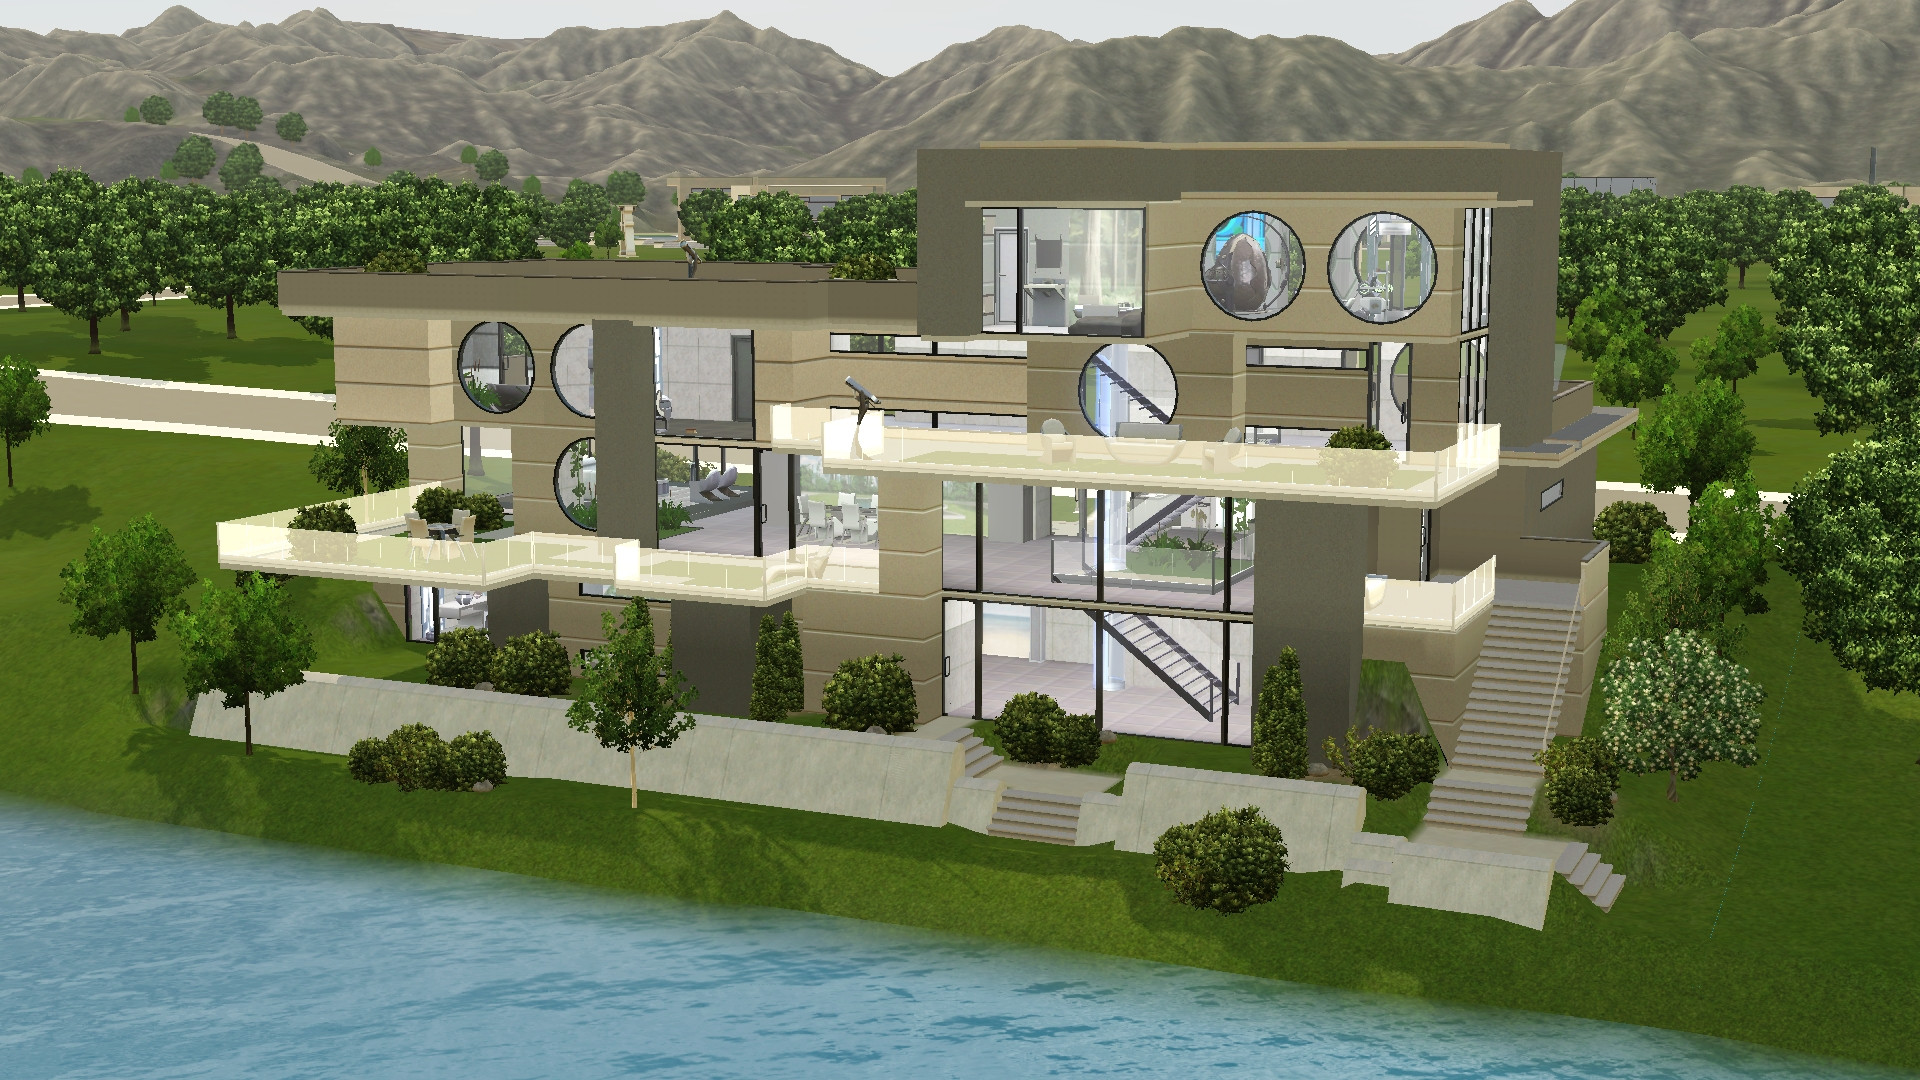 mod the sims - long waterside futuristic house